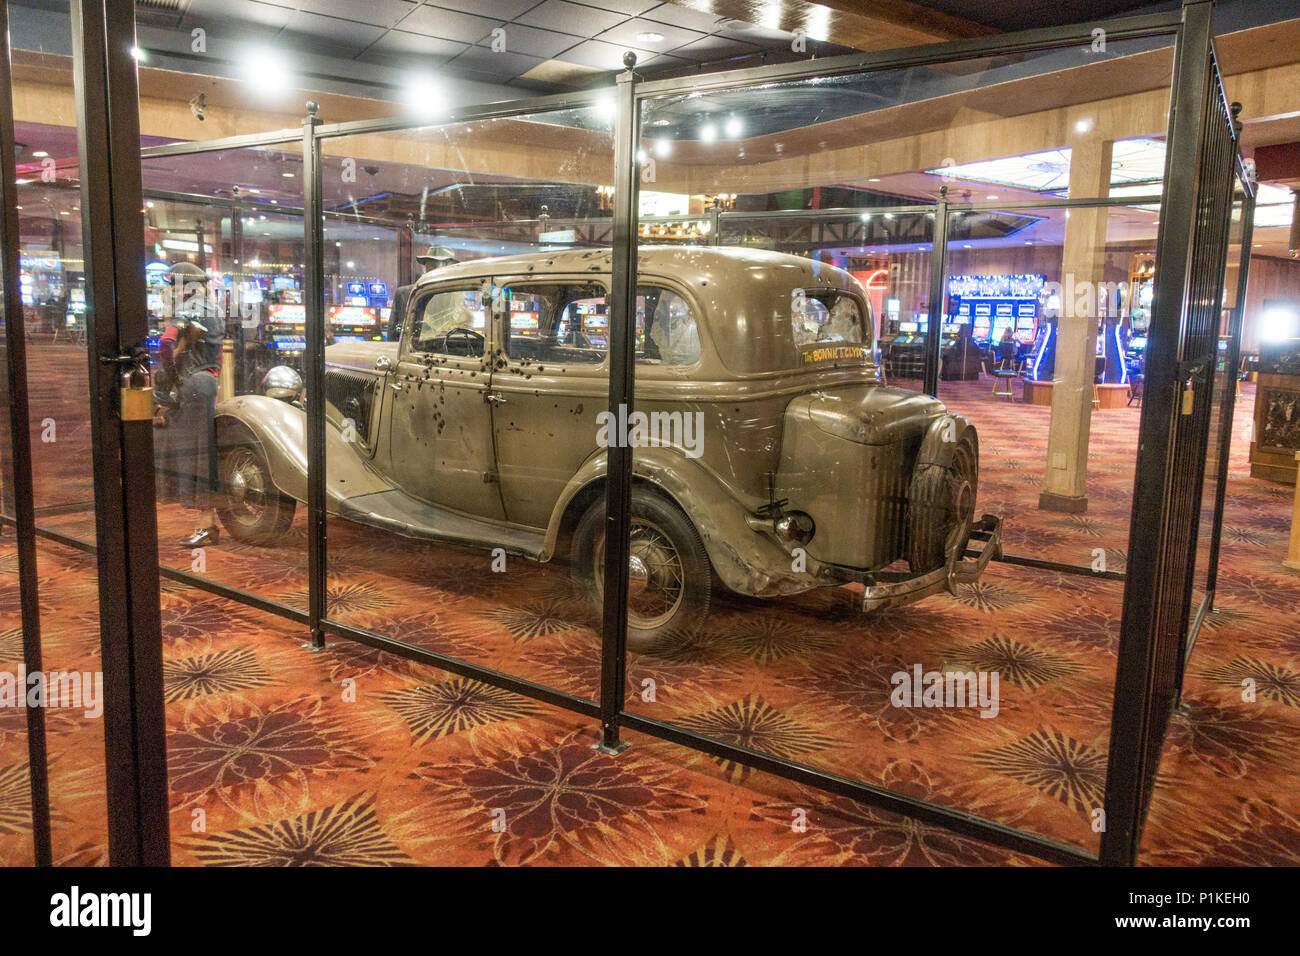 where is the bonnie and clyde car today